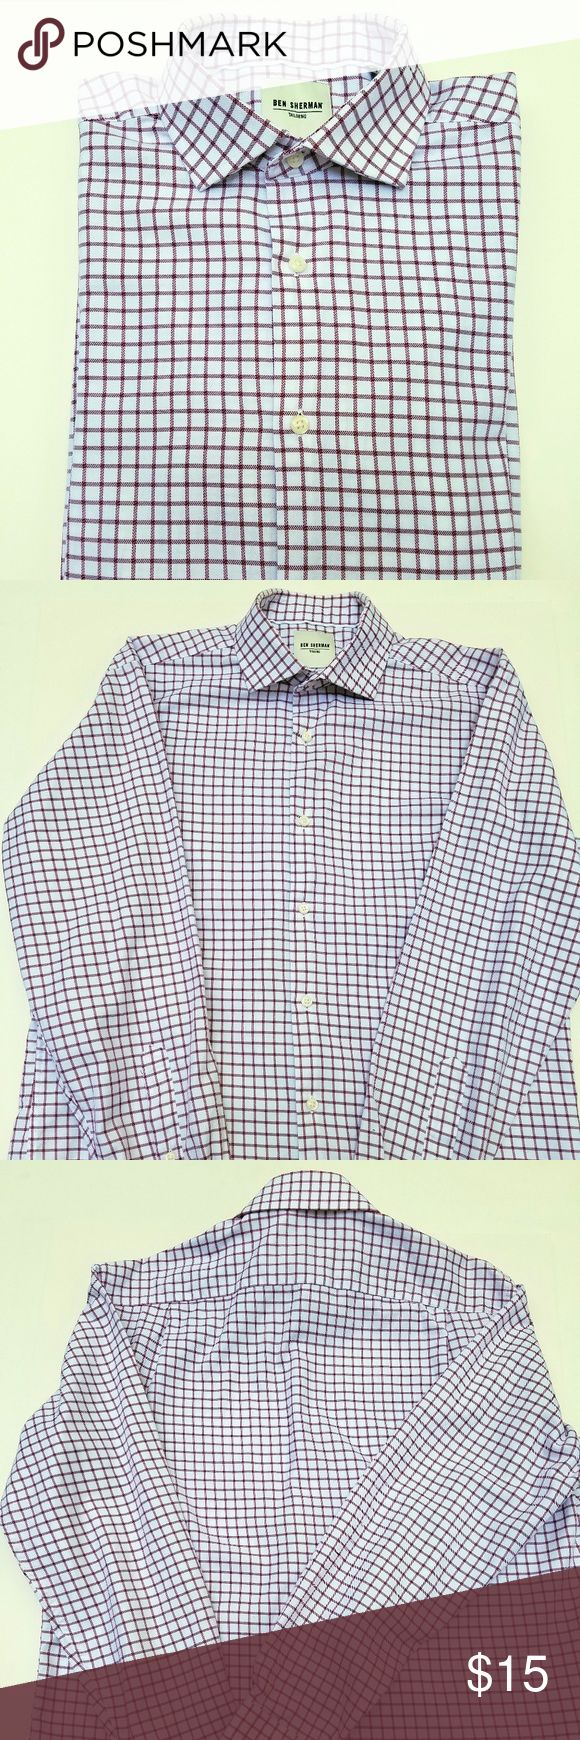 Ben Sherman Tailored Slim Fit Dress Shirt Ben Sherman Tailored Slim Fit dress shirt with spread collar. Excellent condition. No stains, holes or missing buttons. Size M (15 1/2) Ben Sherman Shirts Dress Shirts